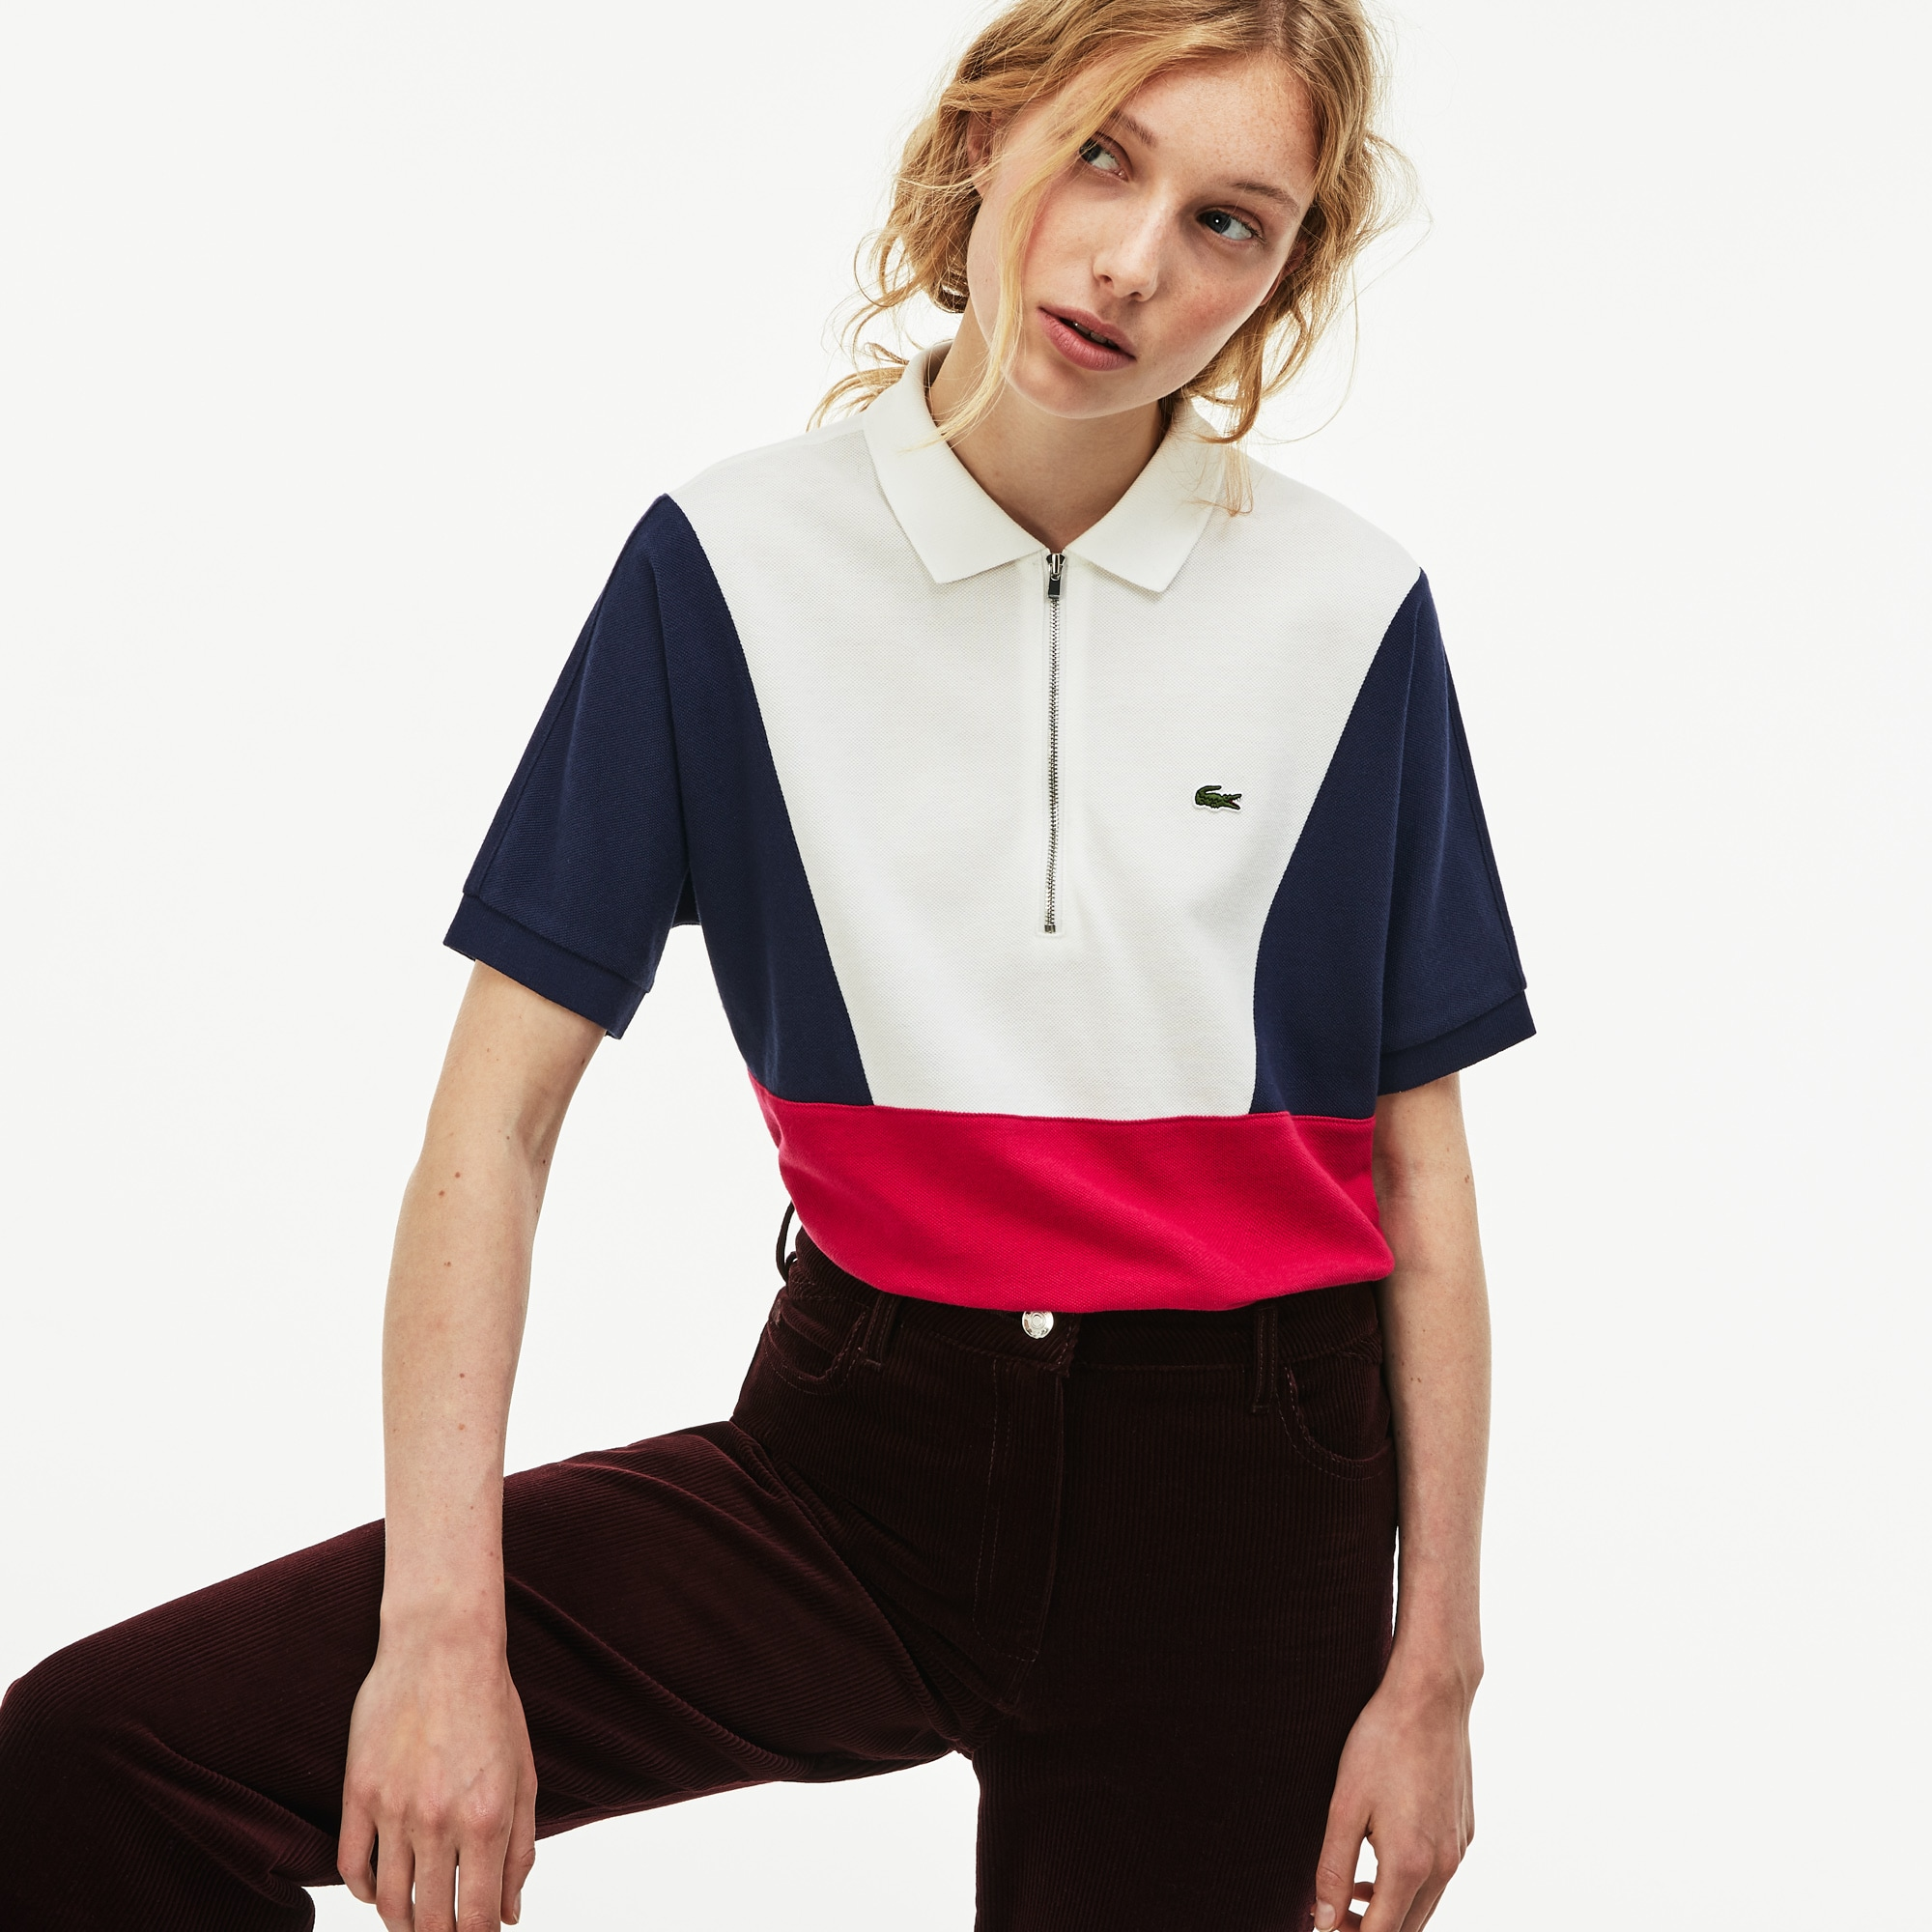 라코스테 우먼 폴로셔츠 Lacoste Womens Zip Neck Colorblock Terrycloth Pique Polo,White / Navy Blue / Red